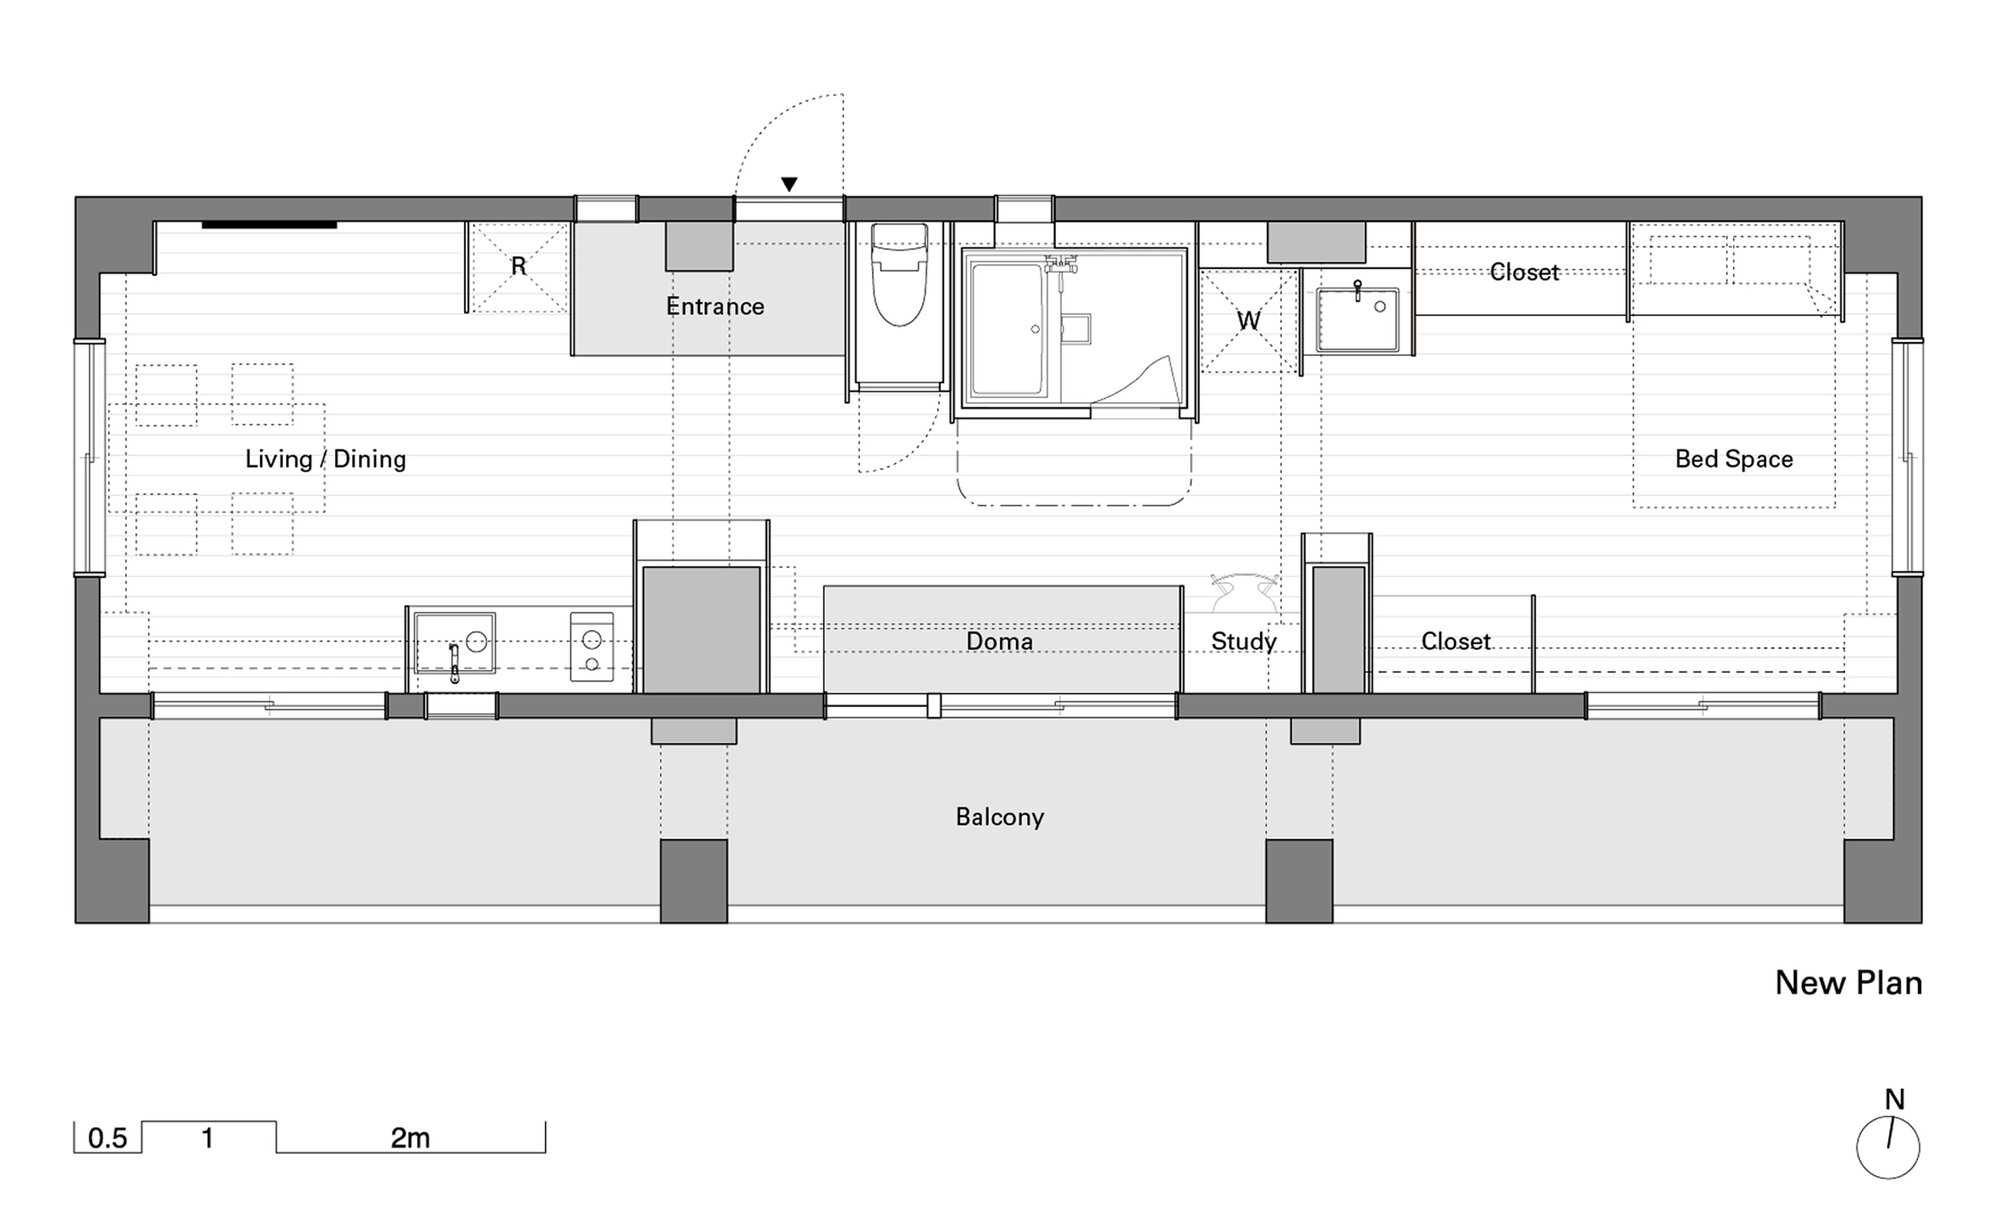 Wing Wall House - Camp Design Inc + Sumosaga Fudosan - Tokyo Japan - Floor Plan - Humble Homes